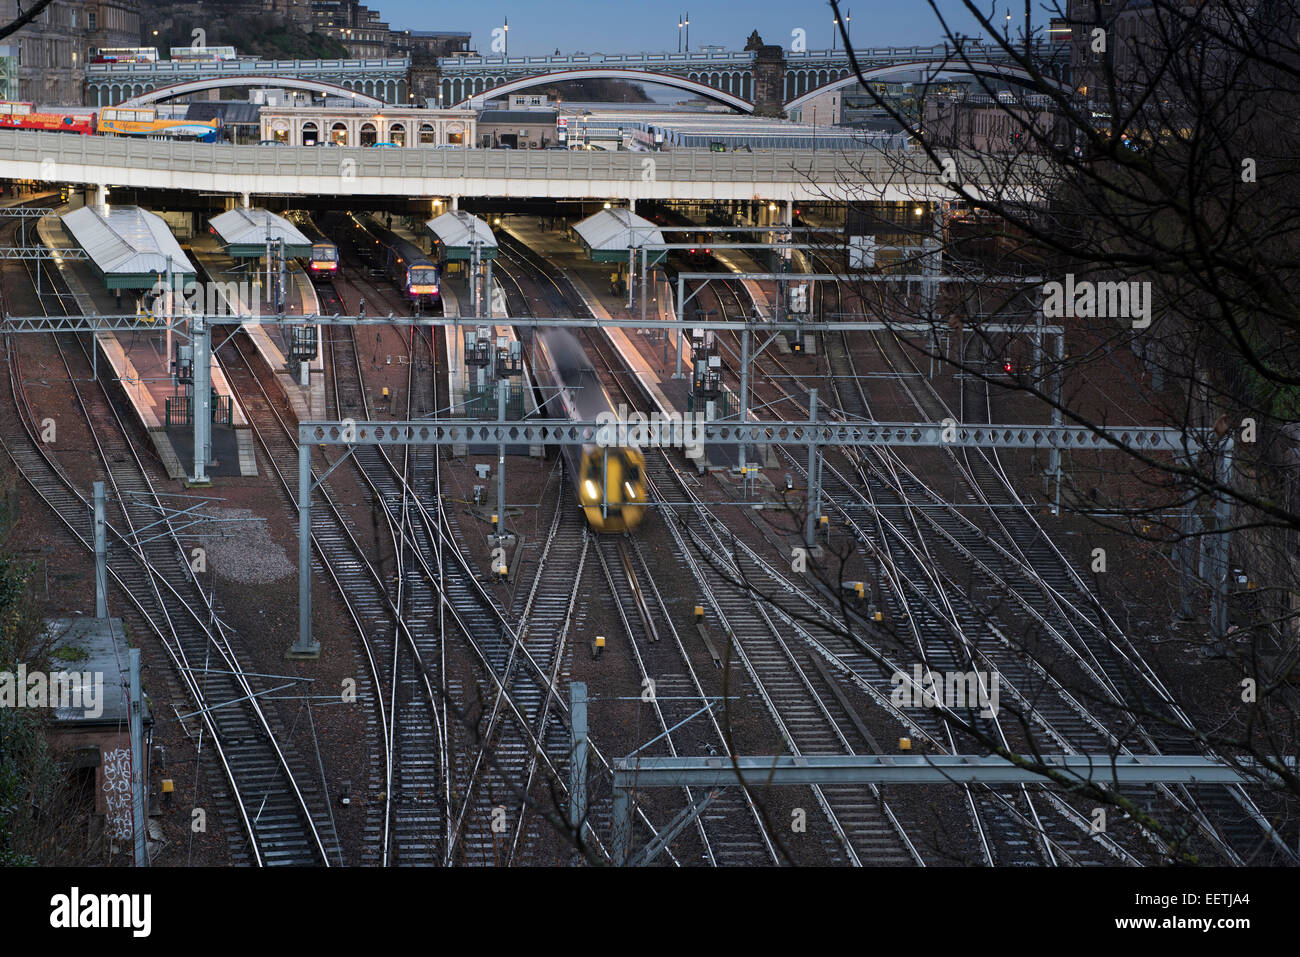 Waverley Station, Edinburgh, Scotland - Stock Image